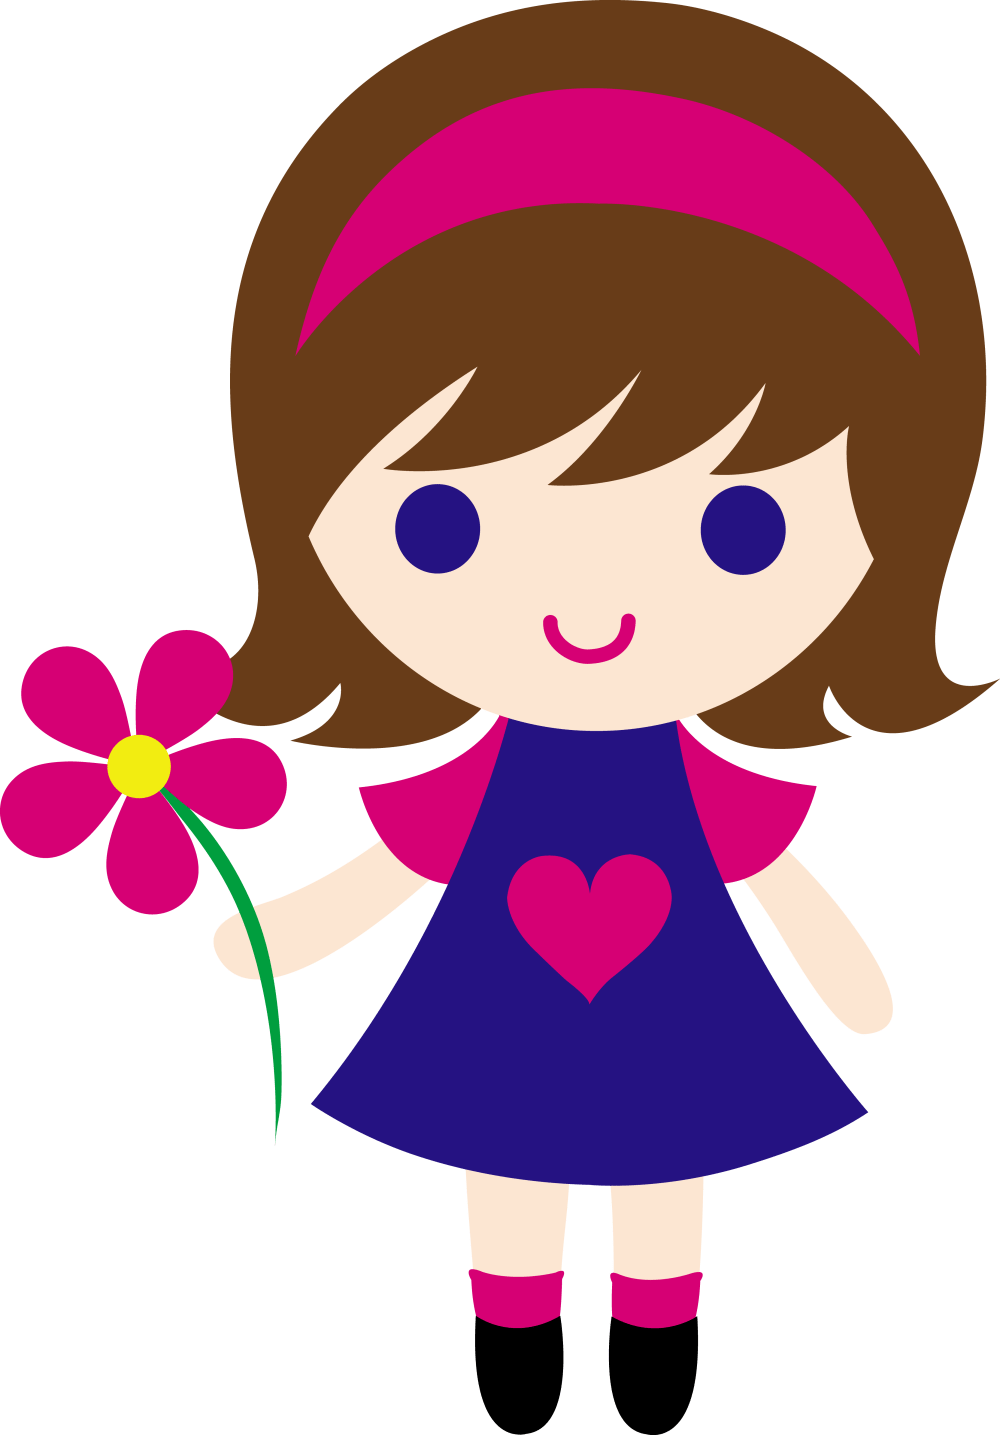 medium resolution of images for girl author clipart